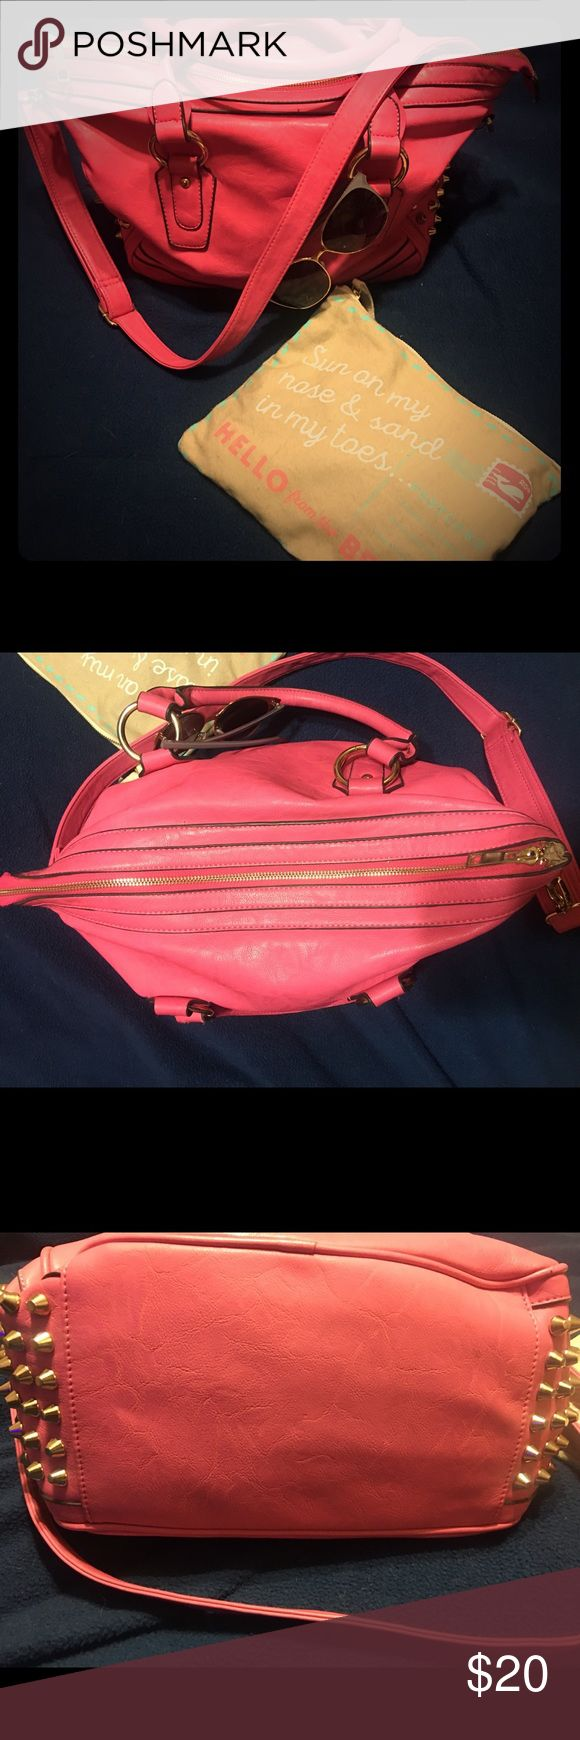 ⚡️⚡️ SUMMER BAG ALERT 🚨⚡️⚡️ Super chic hot pink purse with gold dull ended spikes on either side 🔱 comes with long adjustable strap.  This bag is PERFECT for spring & summer time!  Has some signs of wear on one of the short handles (pictured above) and has normal wear inside bc it was pre-loved ❤️ the inside zipper pocket doesn't have the tab you hold onto to zip/unzip, but it still zips up just fine.  Idk if it's real leather 😕 feel free to make reasonable offers 🙏🏽🎯 mms Bags Satchels